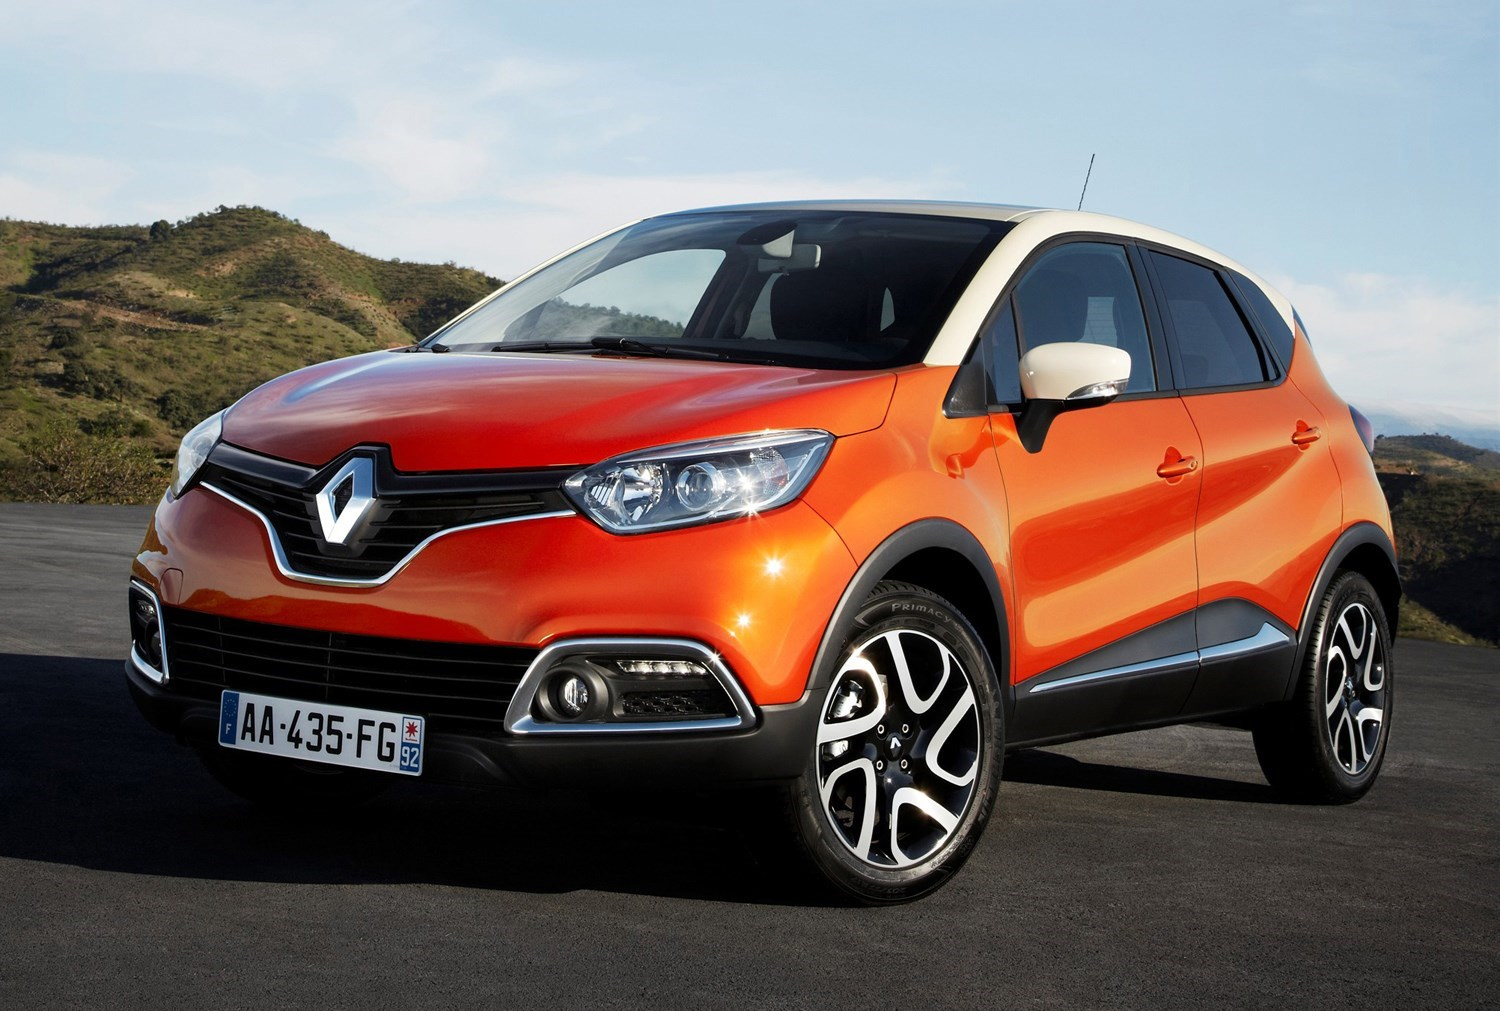 Renault Captur - cheap family cars